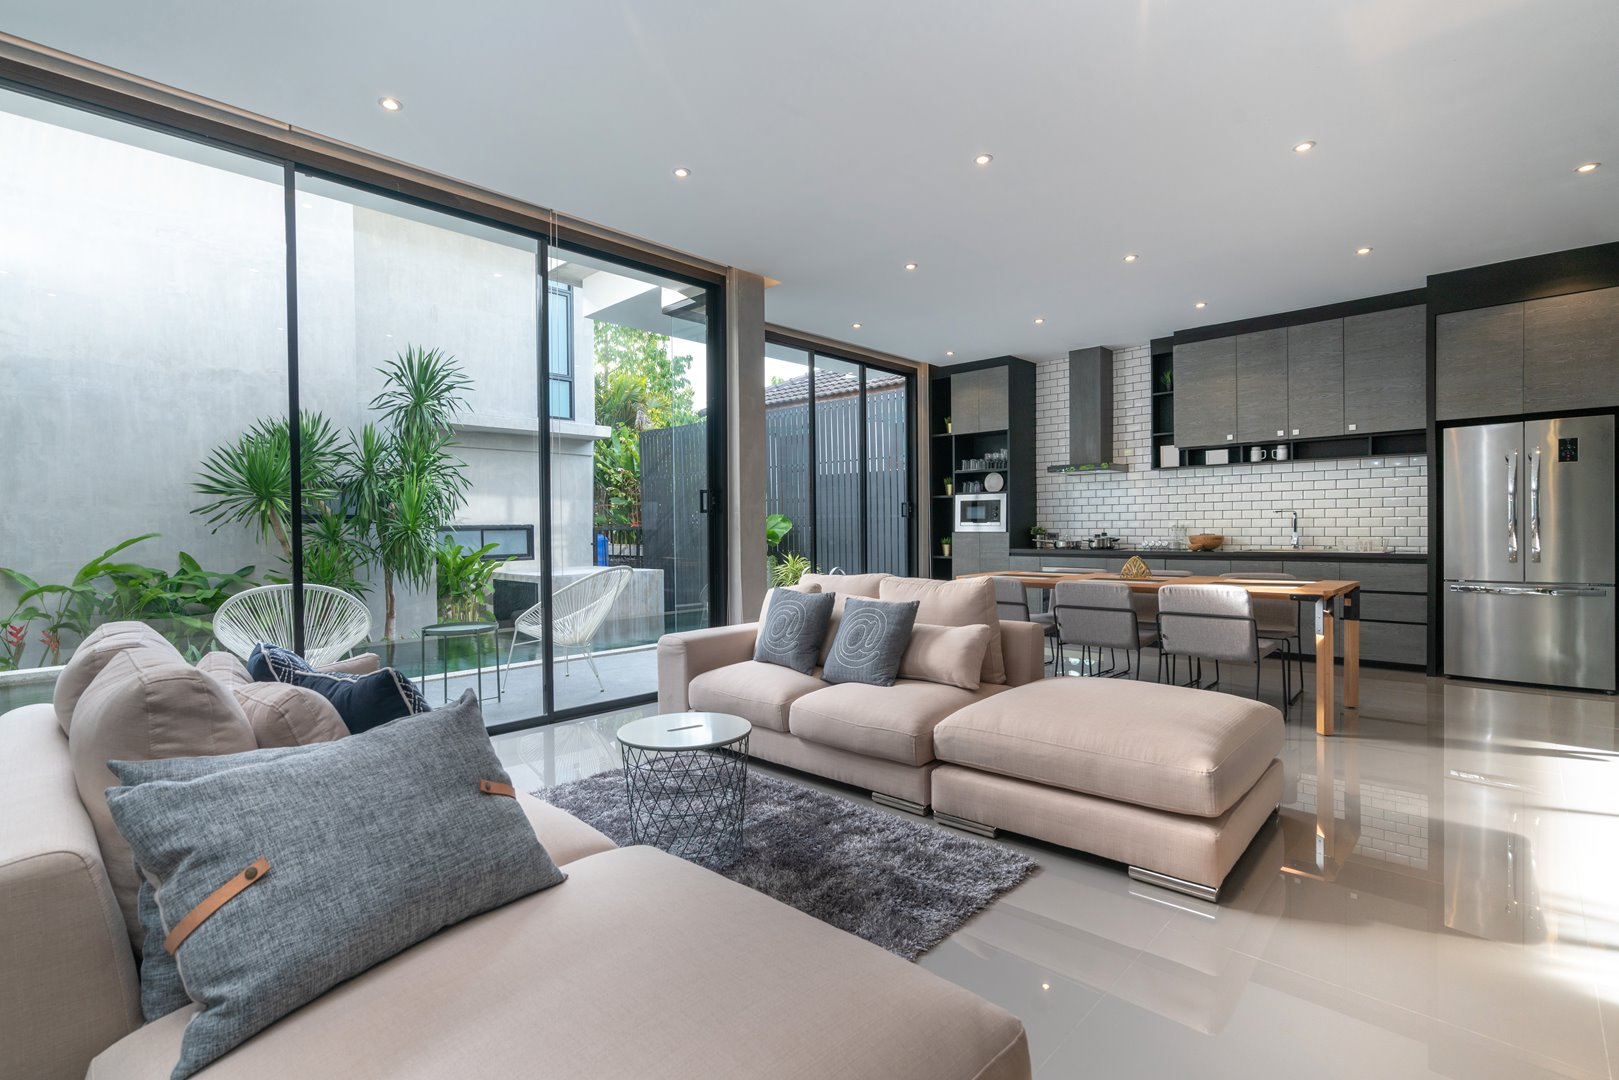 living room view with large sliding door